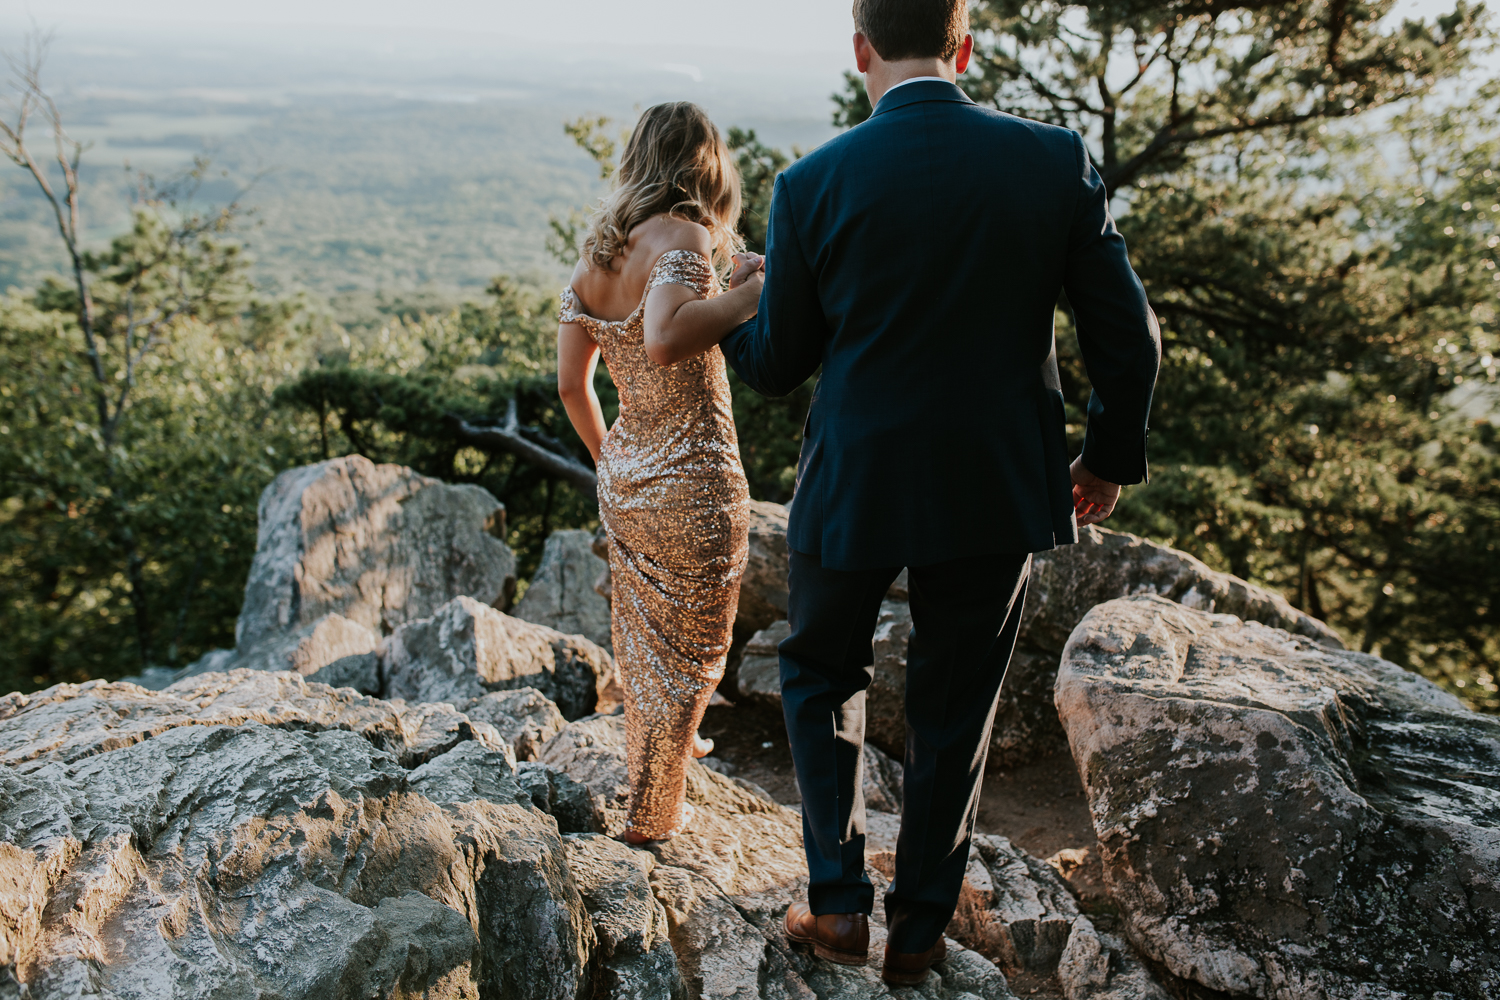 sugar_loaf_mountain_maryland_mountain_top_engagement_photographer-1.jpg